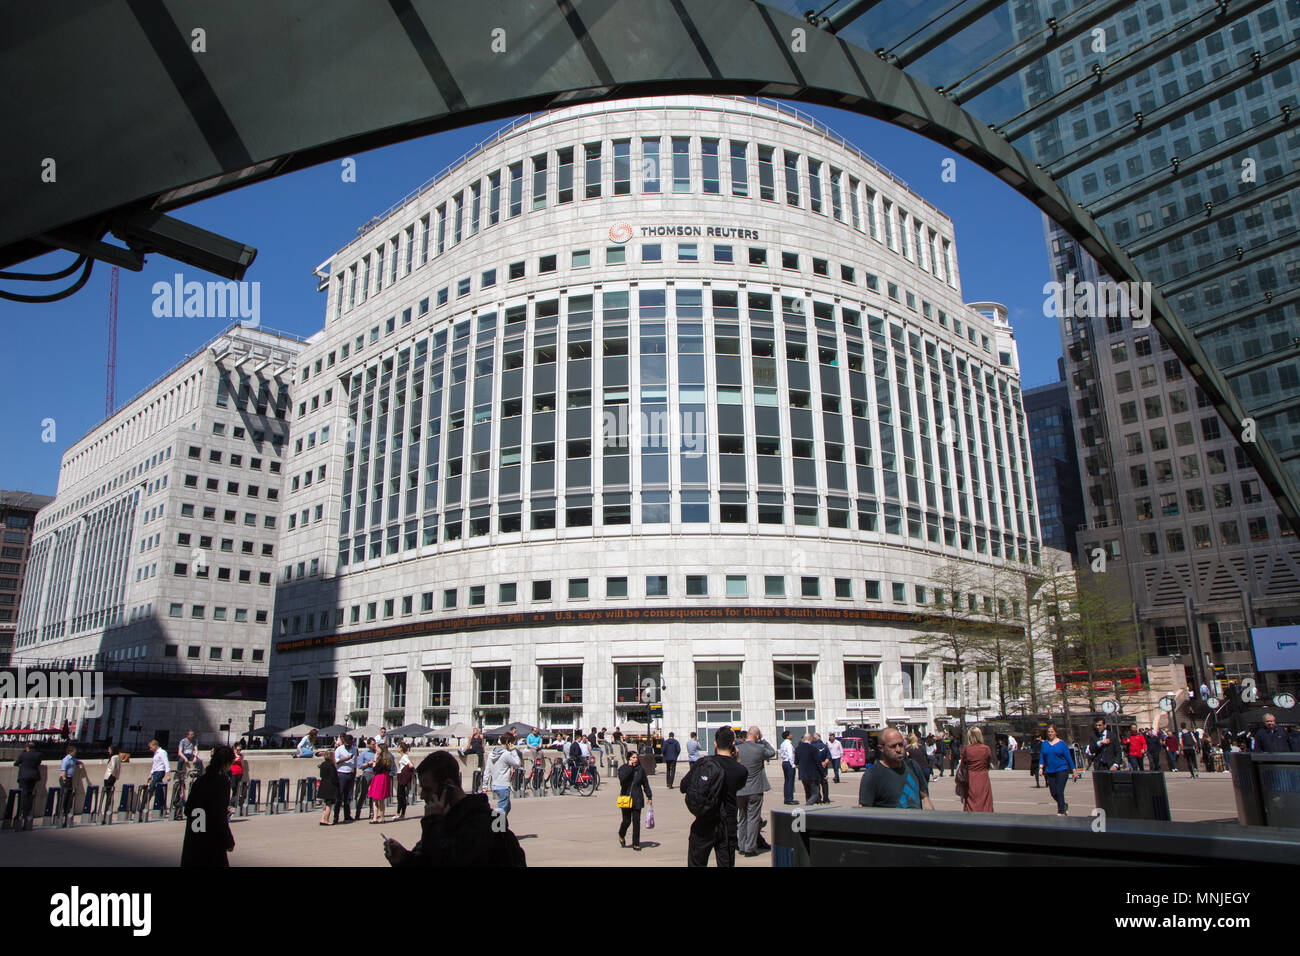 Thomson Reuters offices in Canary Wharf, London - Stock Image